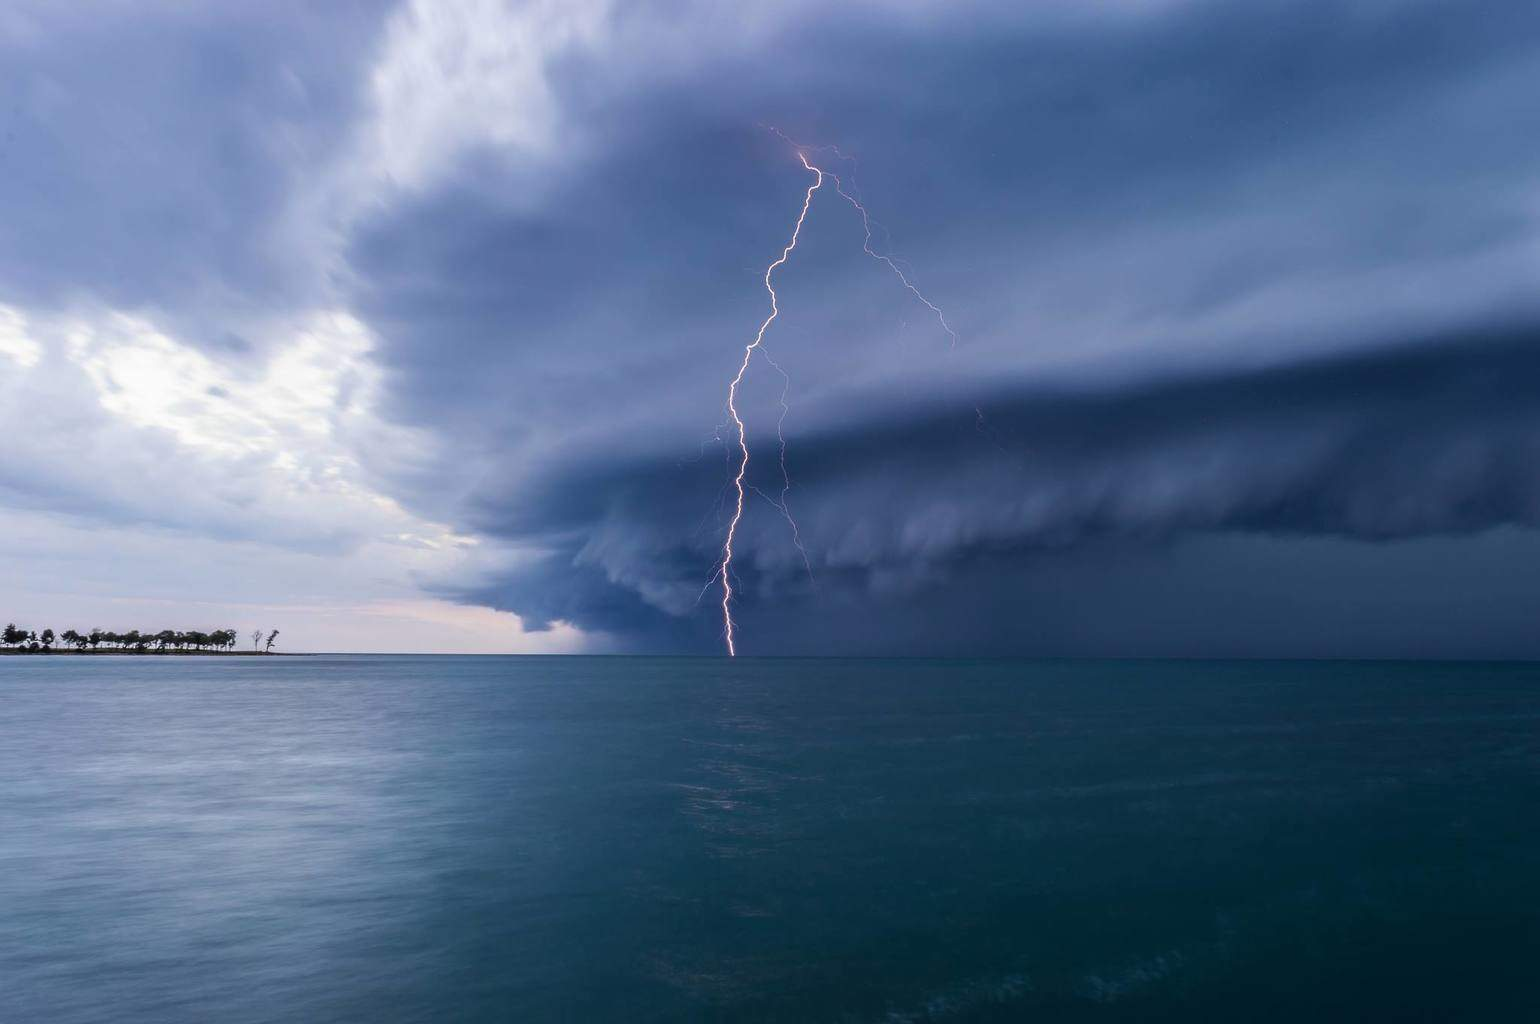 Squall line is approaching from the Adriatic Sea and with it this amazingly structured shelf cloud. Taken from a pier just south of Umag, Croatia, June 23rd 2015.